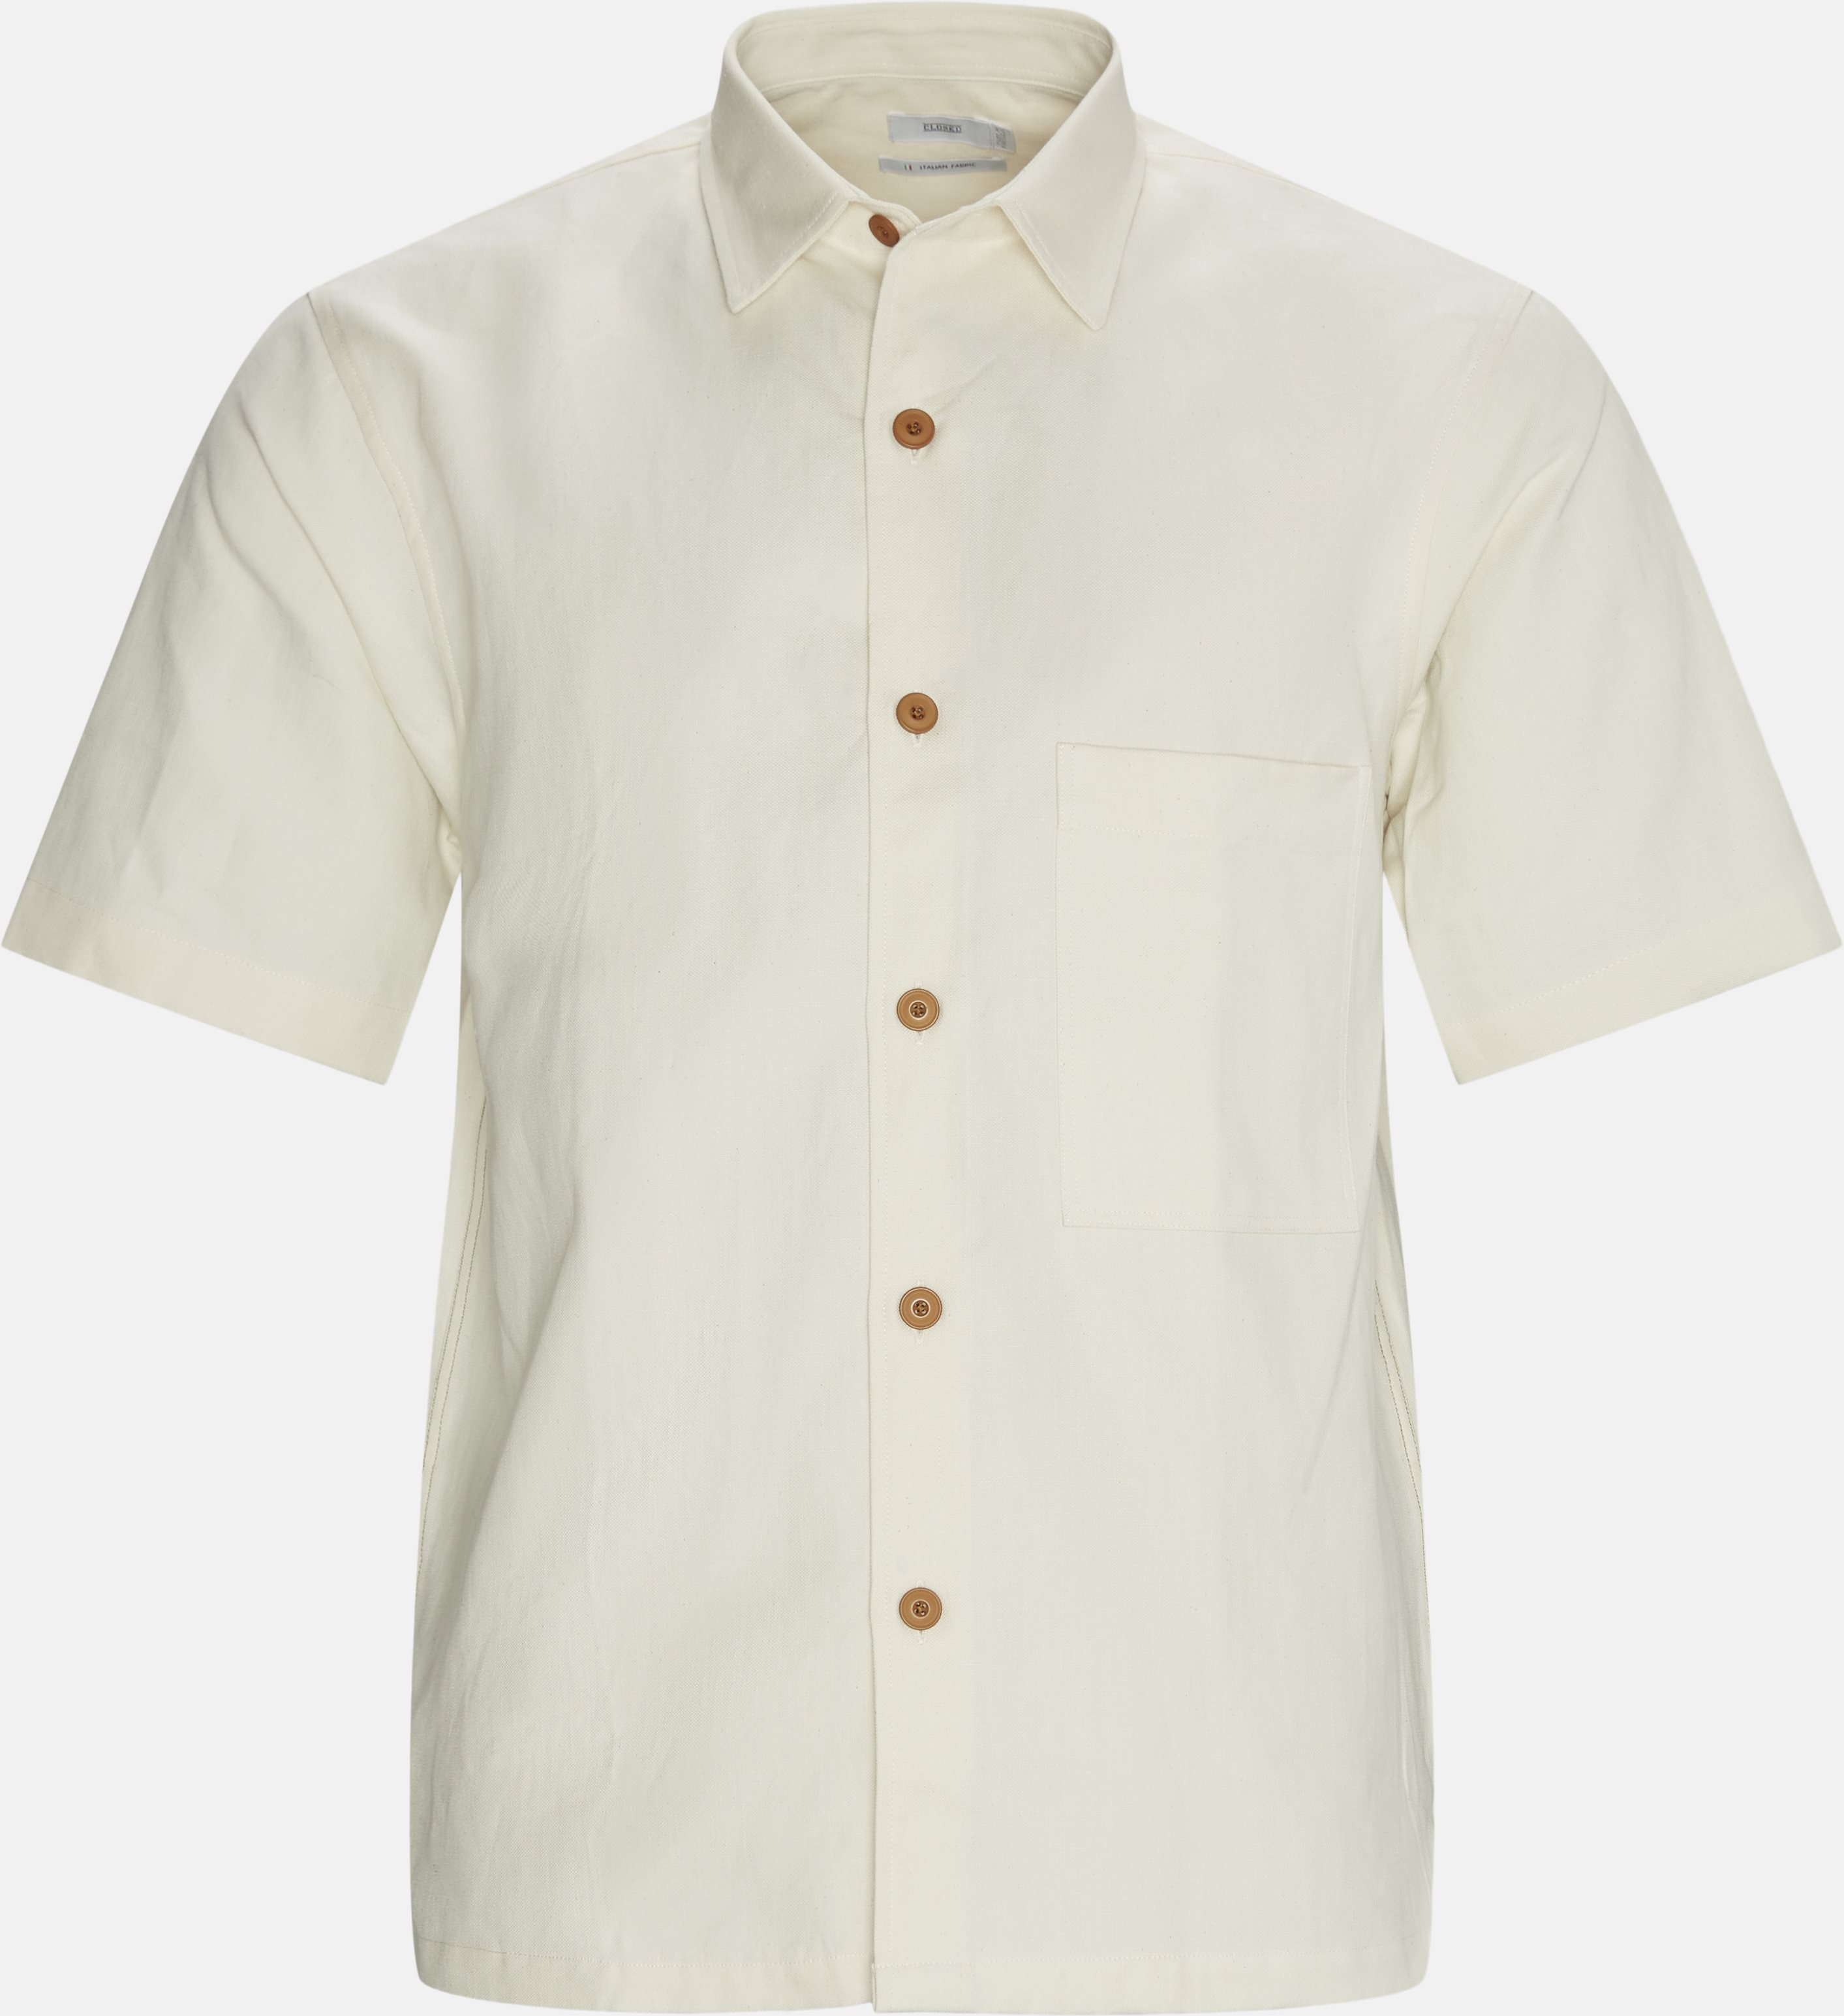 Shirts - Regular - White